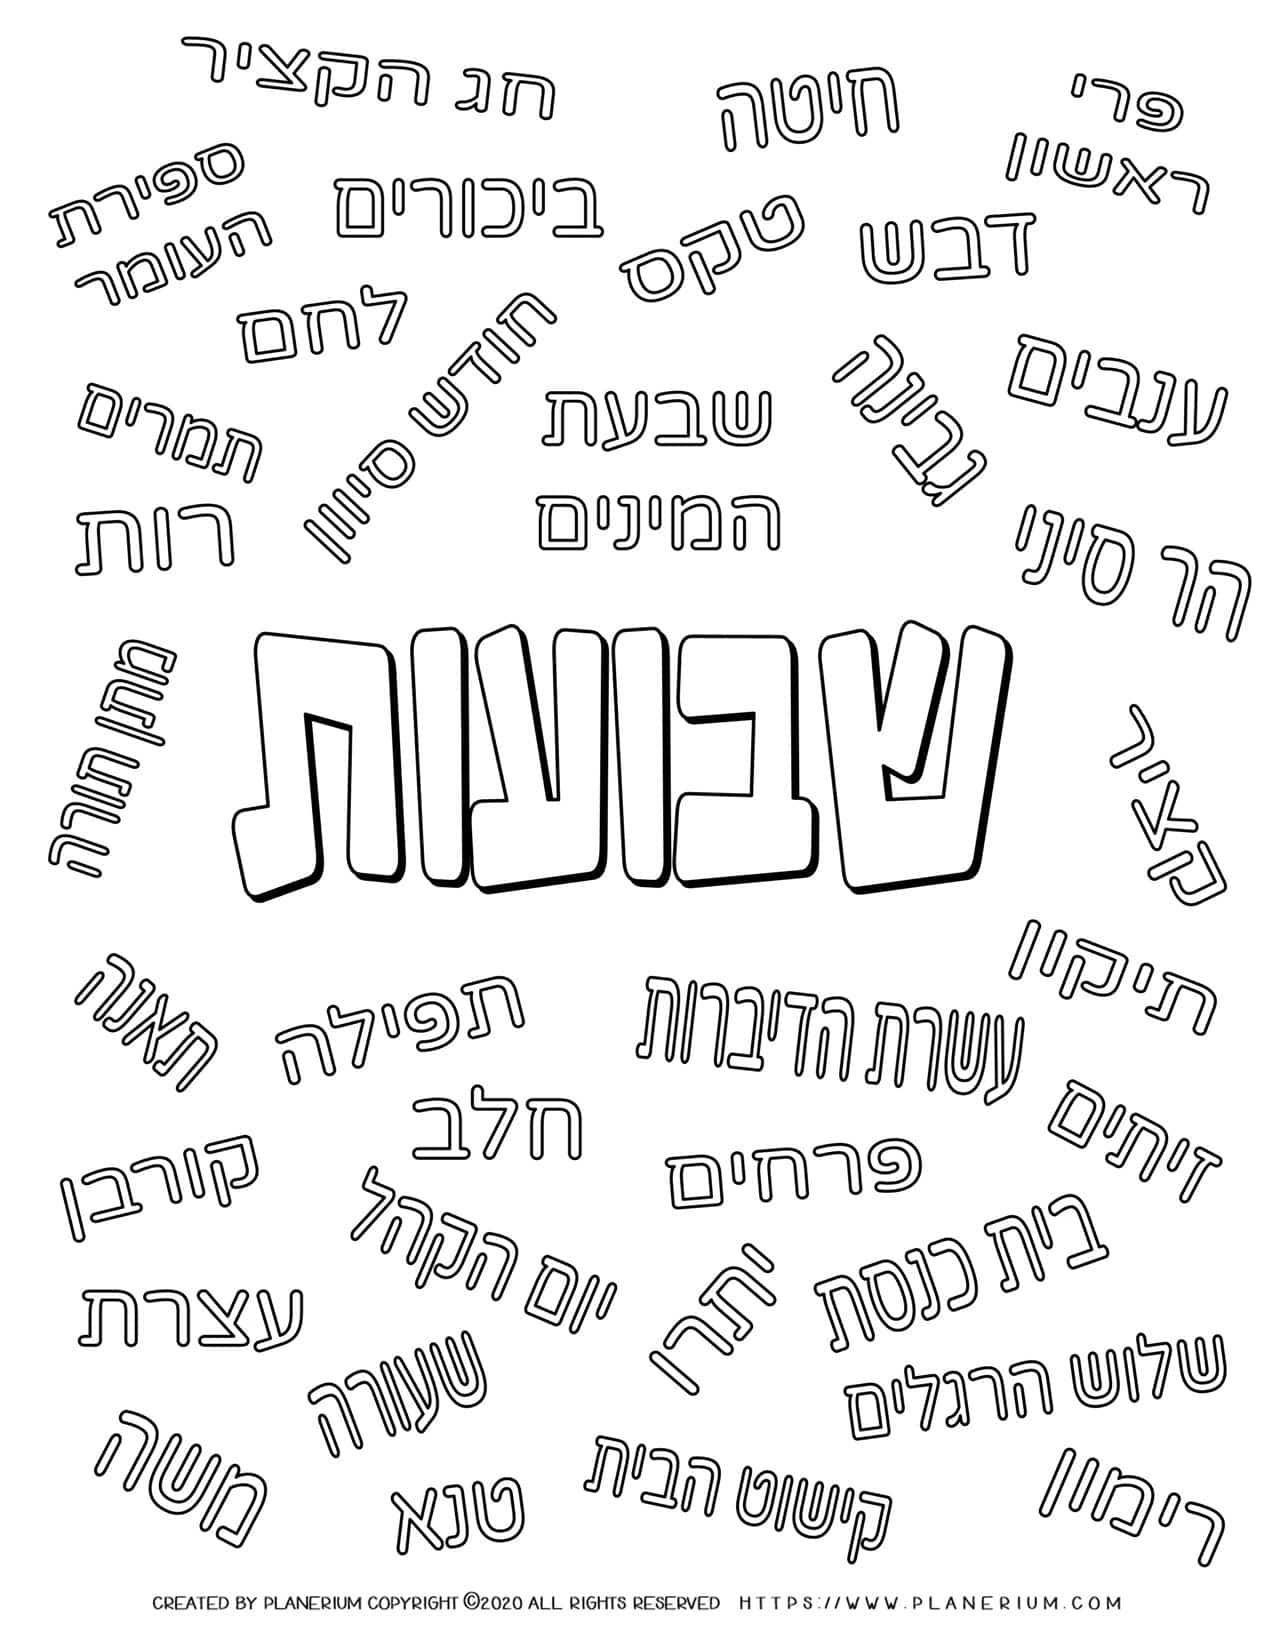 Shavuot Coloring Page - Related Words in Hebrew | Planerium